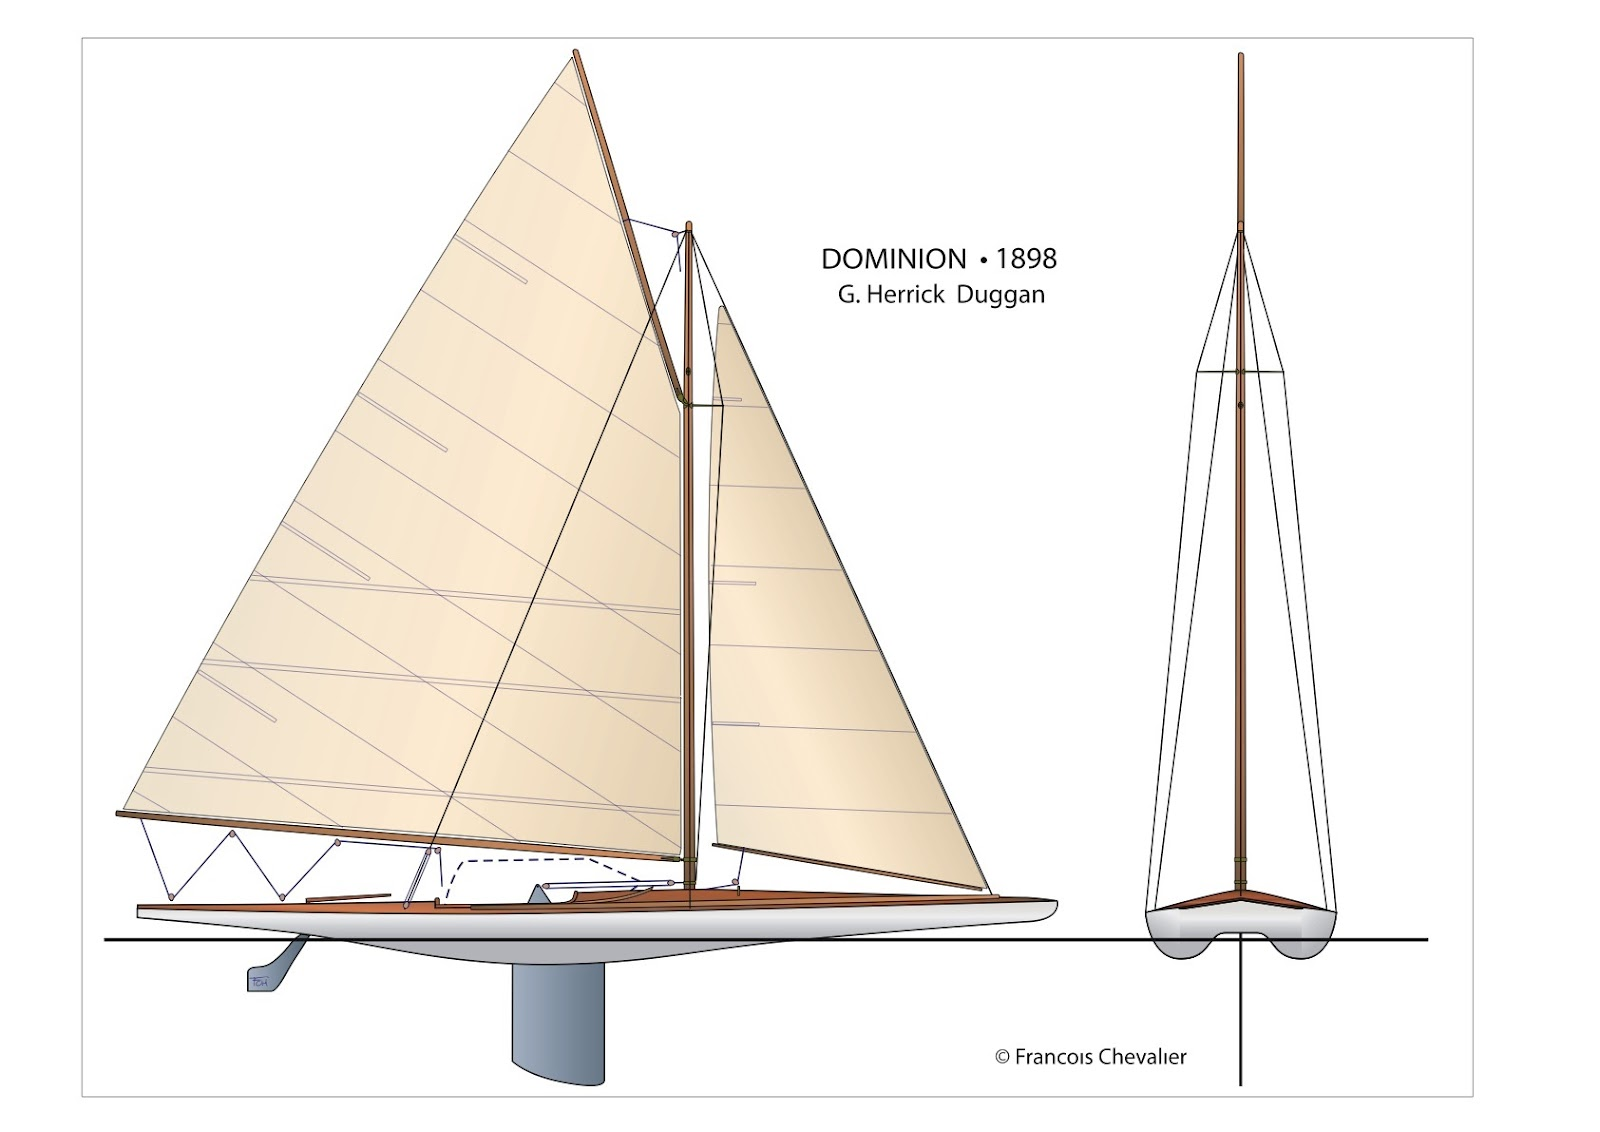 Wooden+Scow+Plans Wooden Scow Plans http://forum.woodenboat.com ...